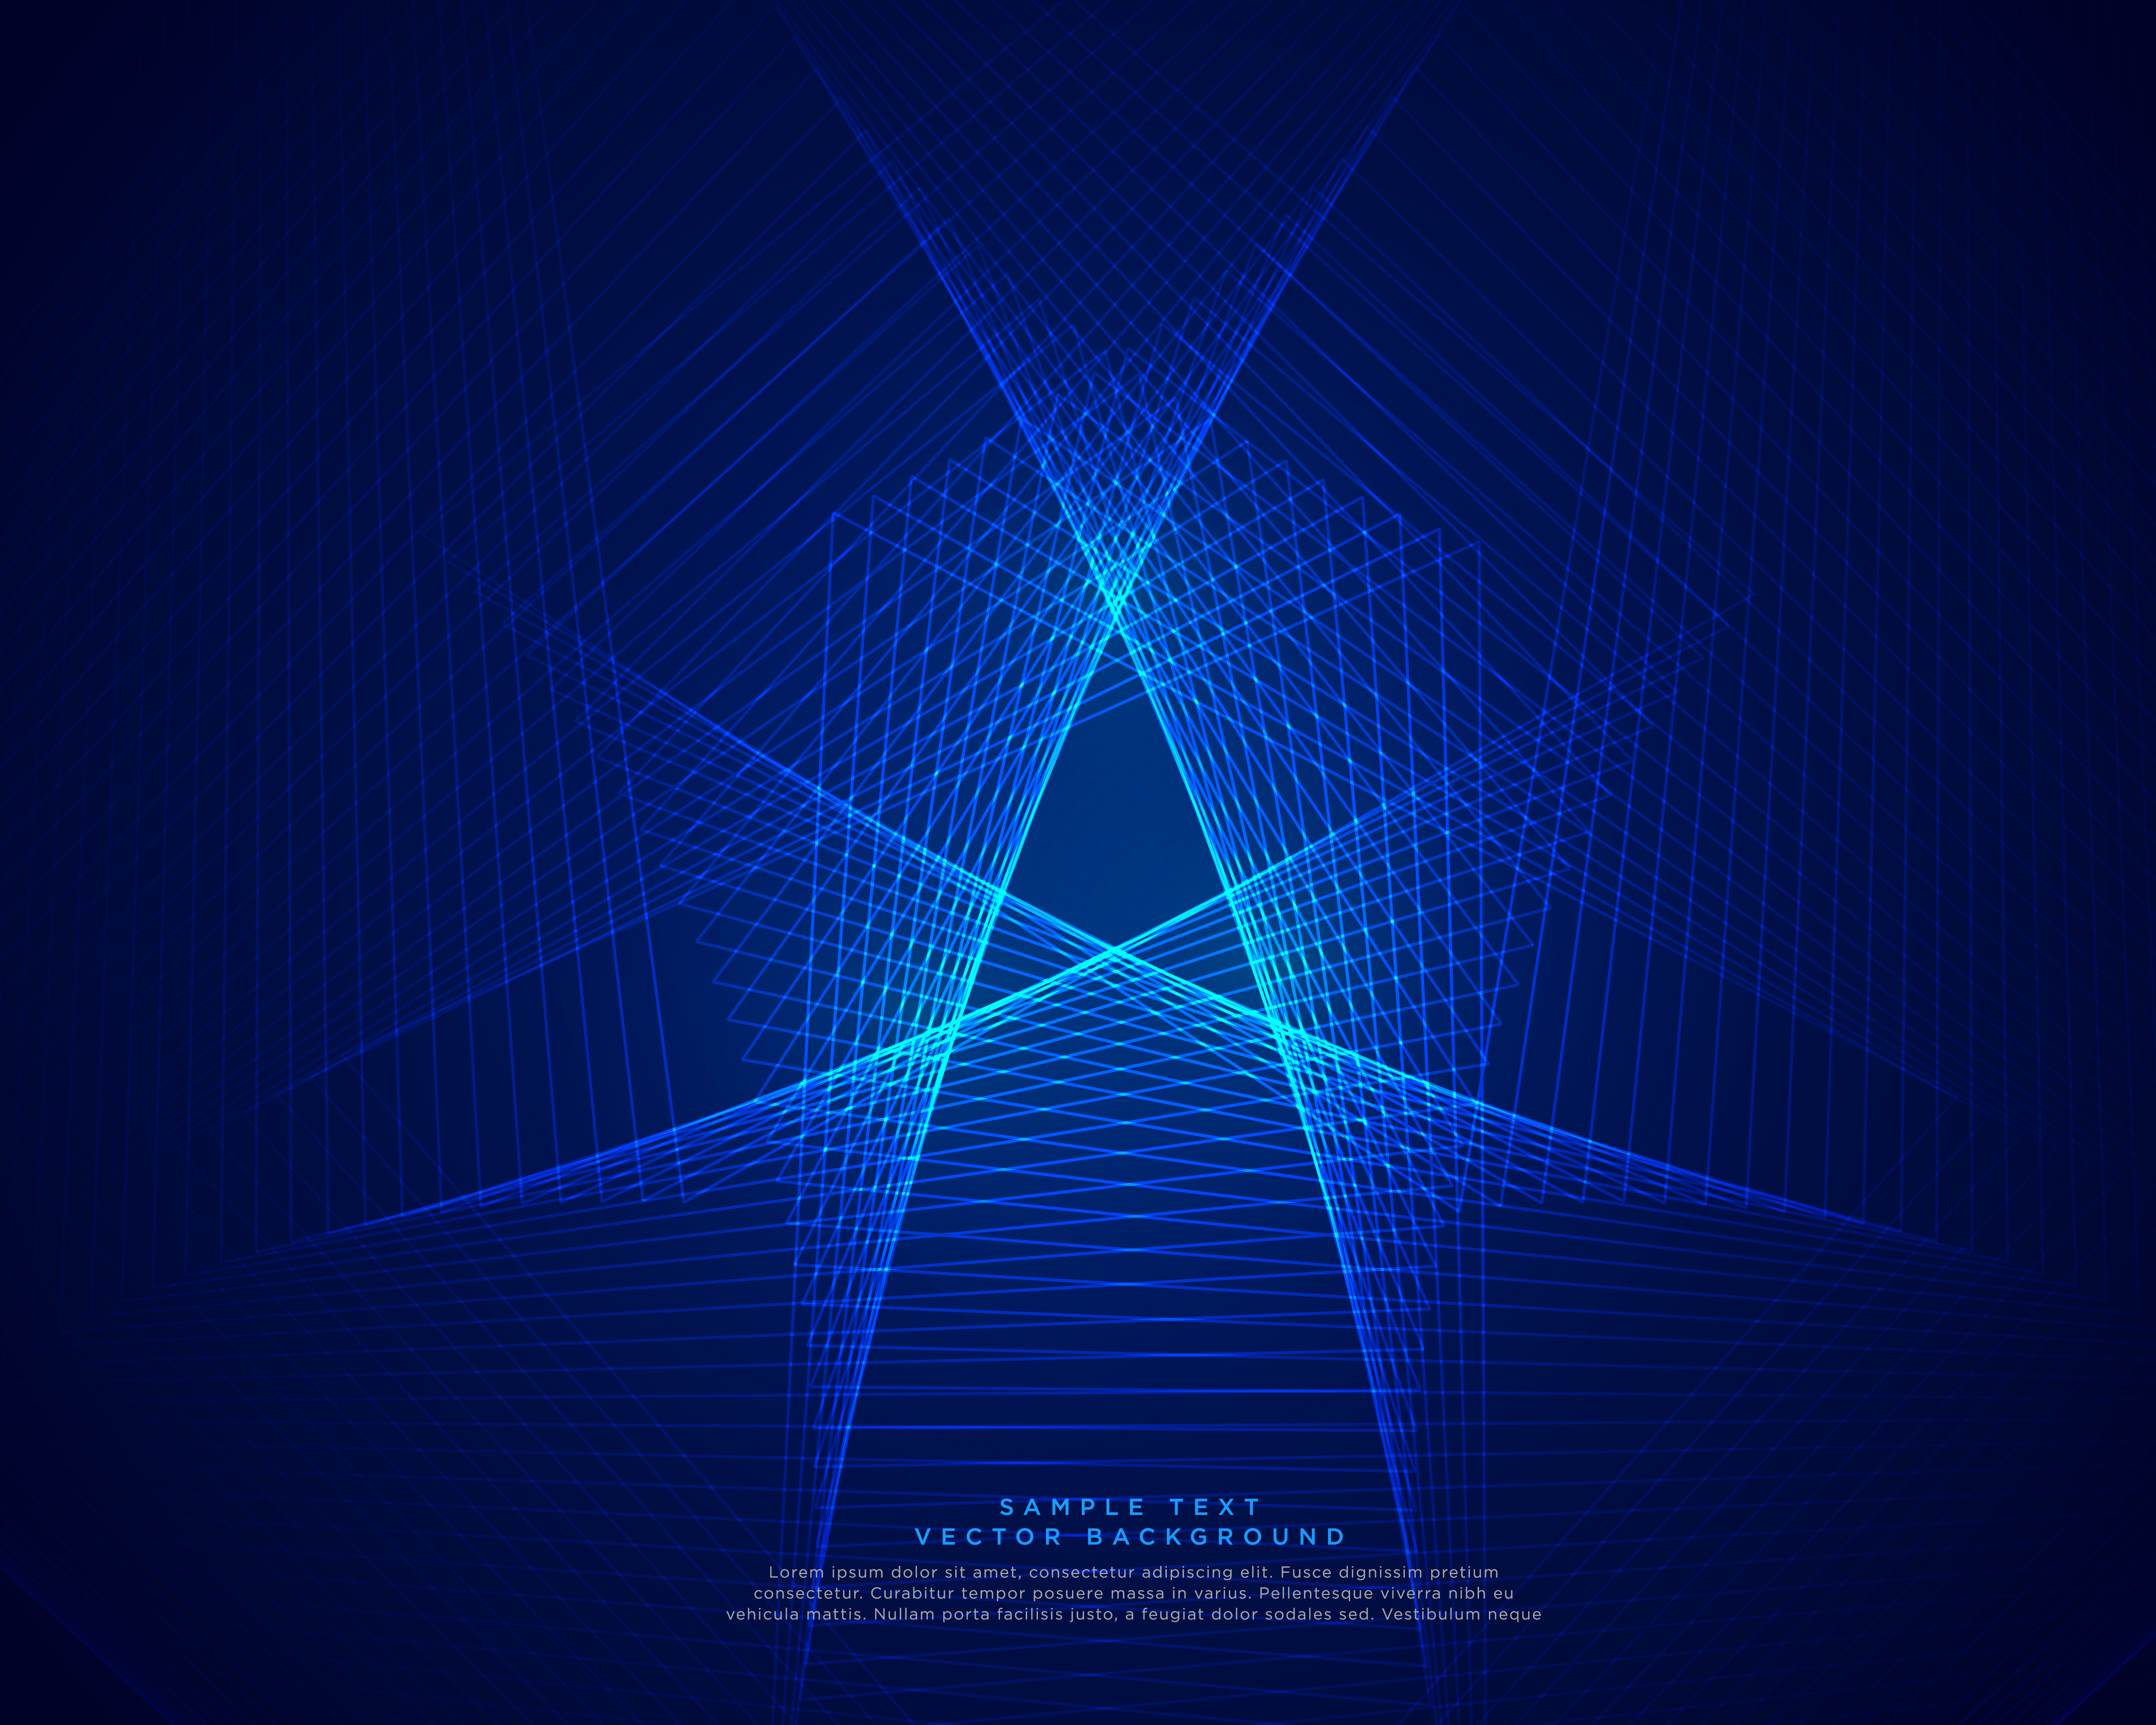 Blue Technology Abstract Background: Blue Technology Abstract Lines Background